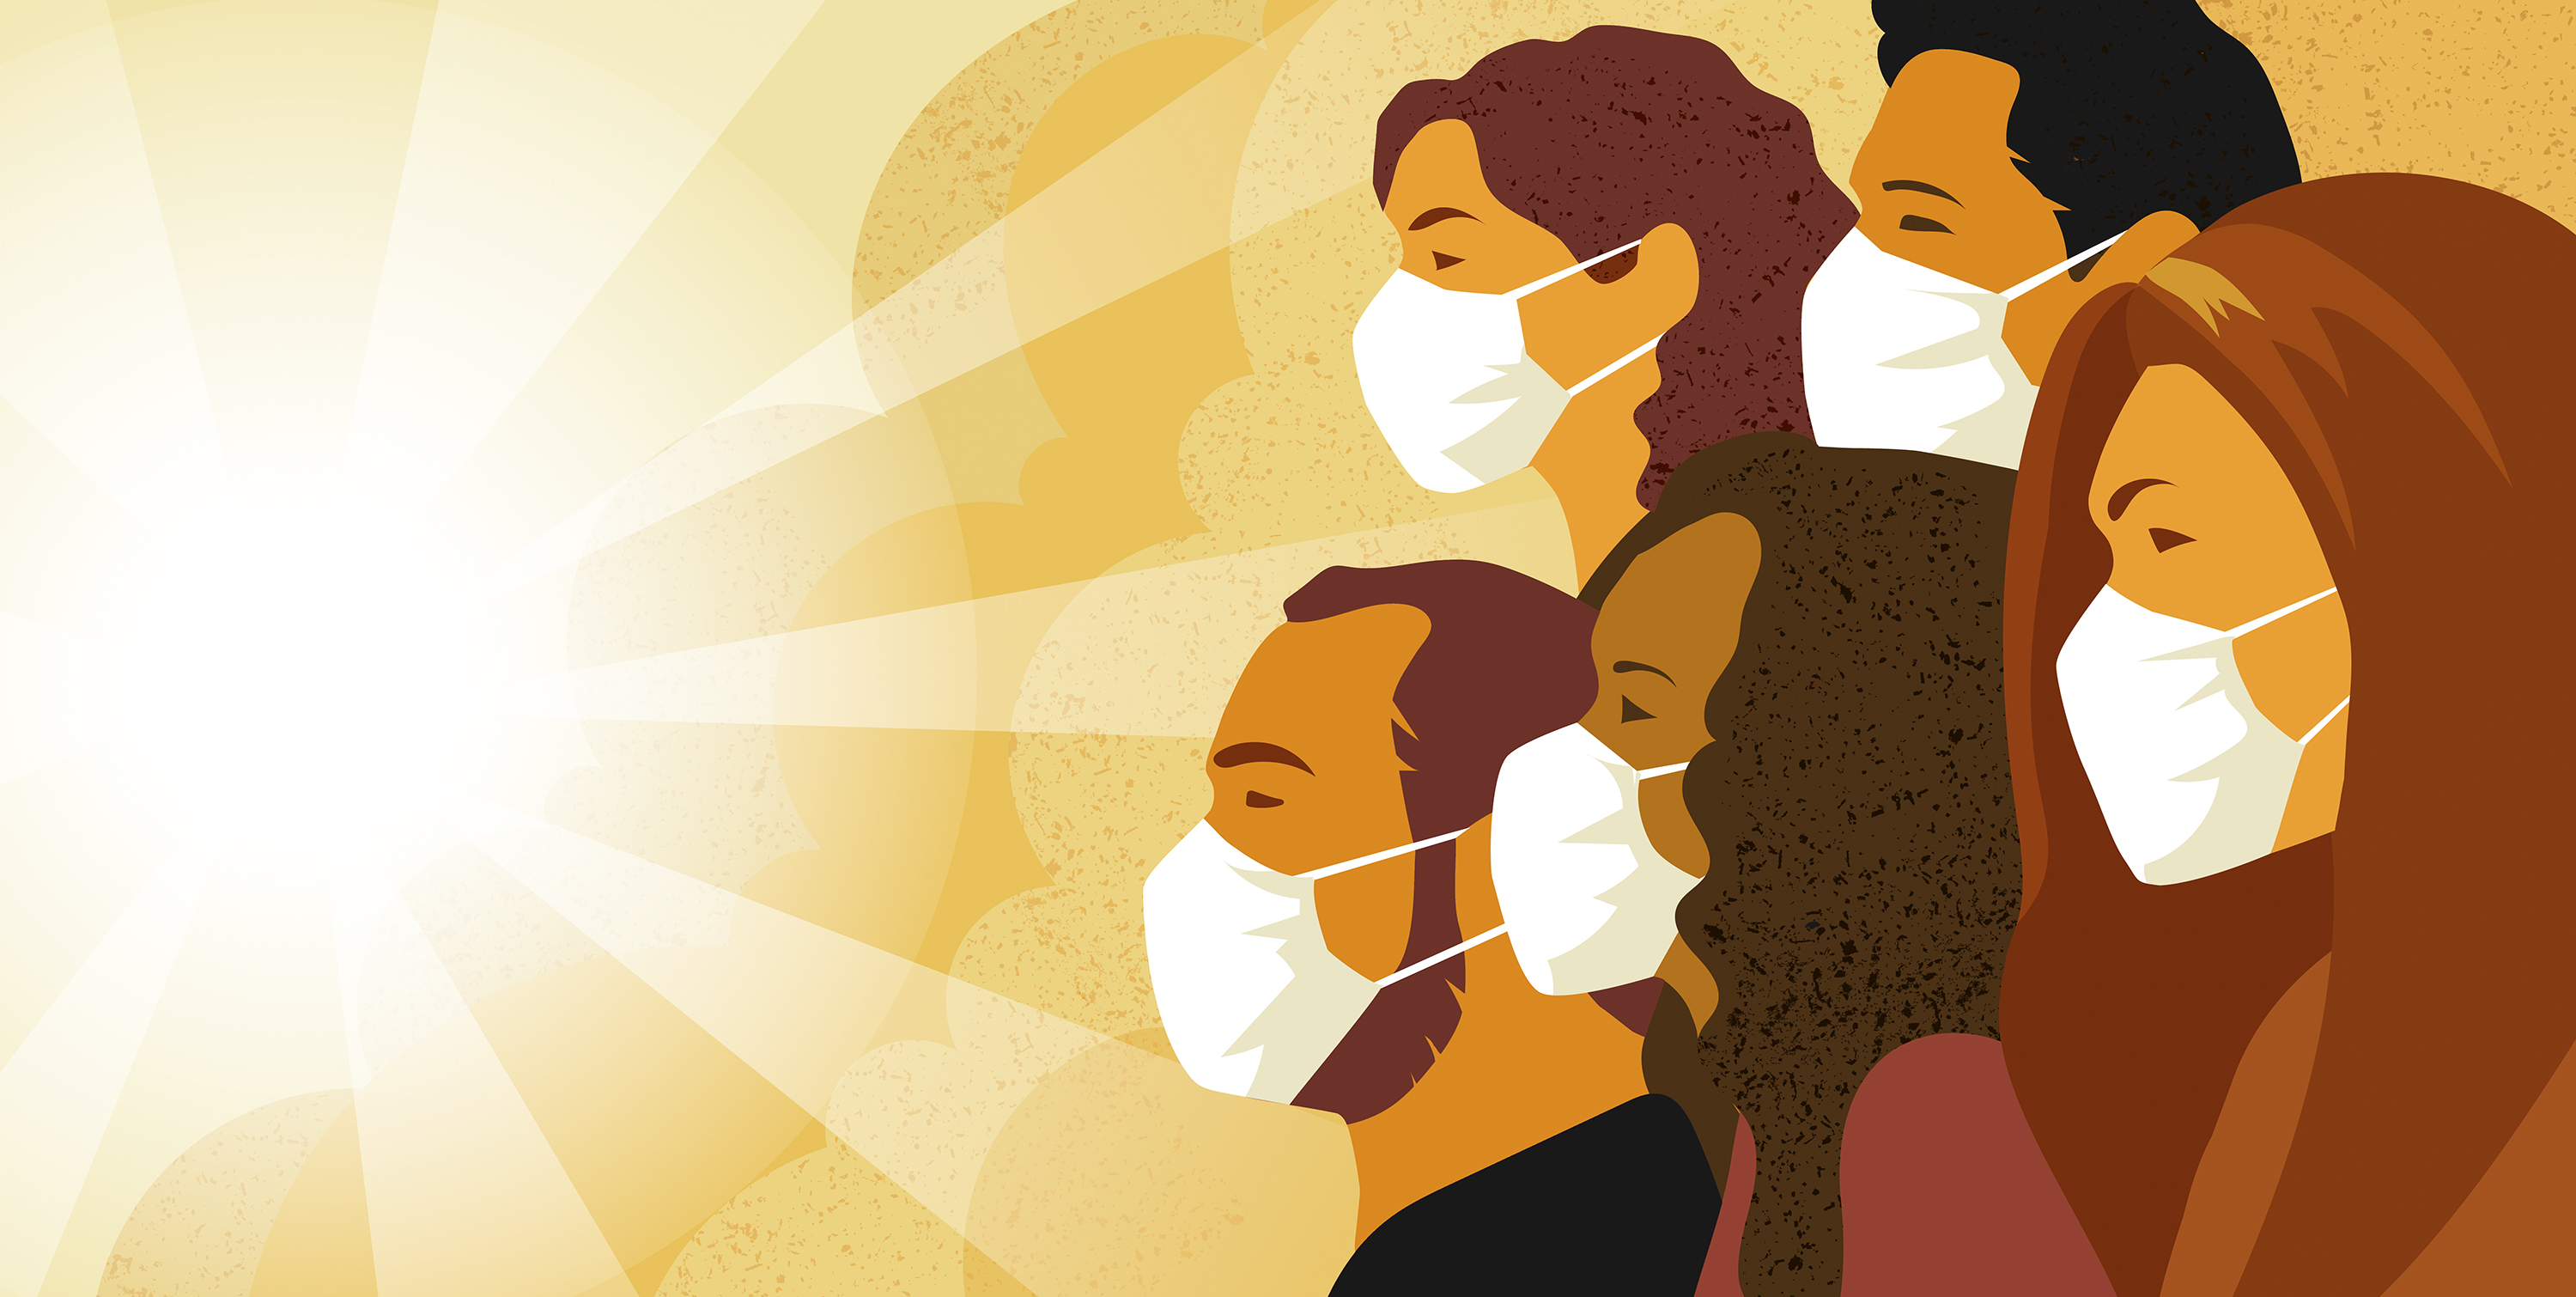 An illustration of people in breathing masks facing a shining sun.